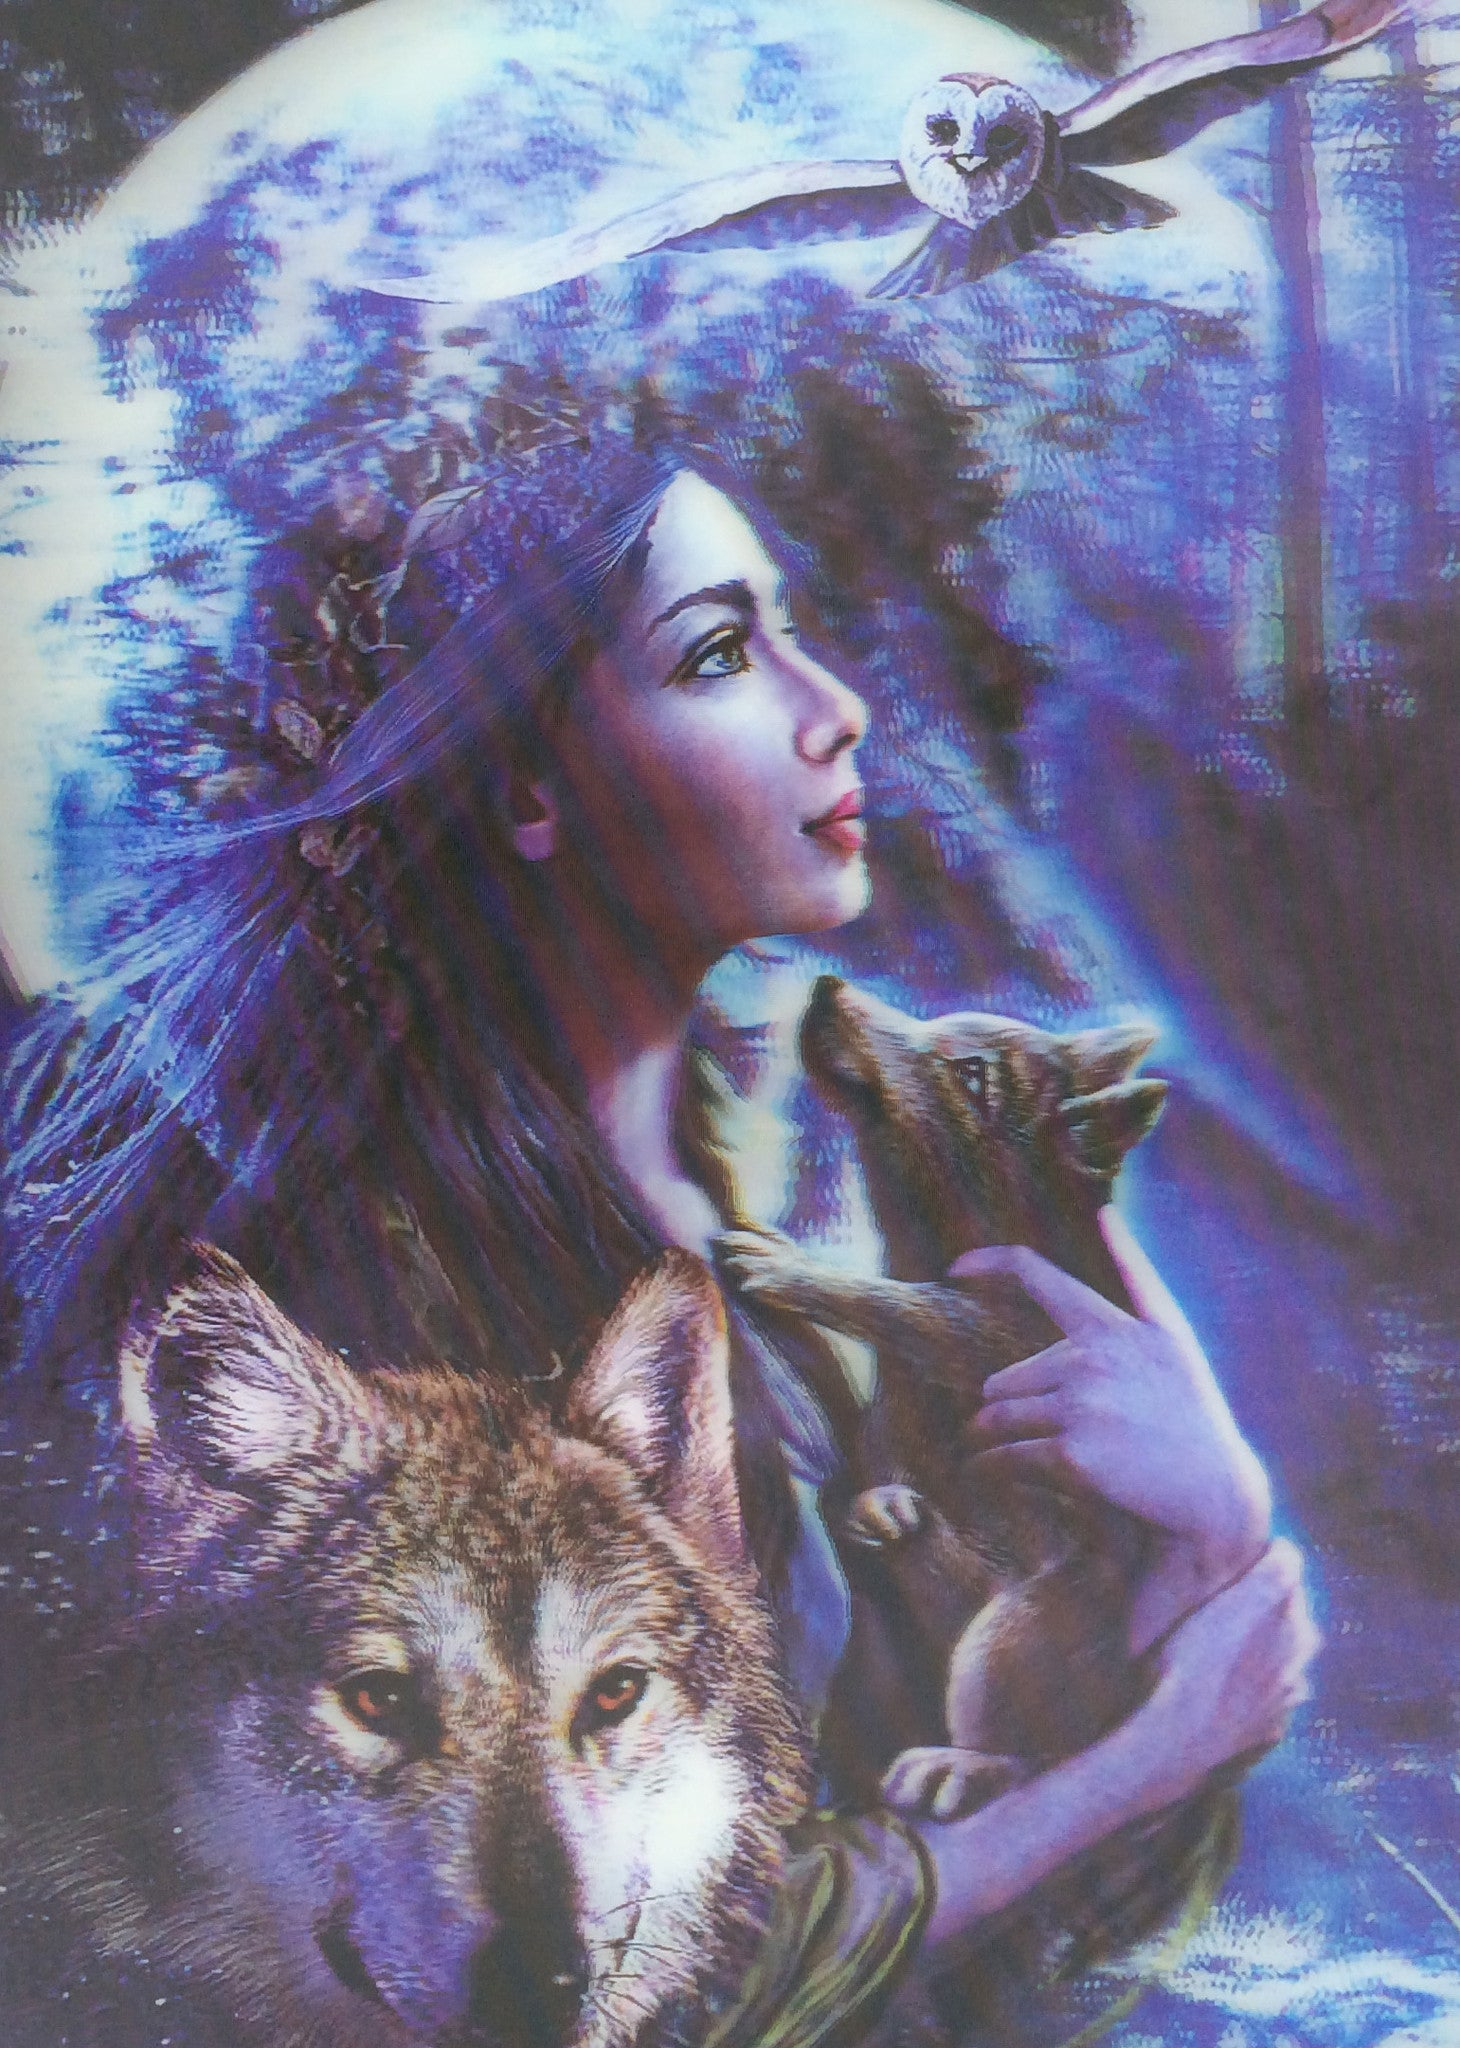 w wolf girl owl 3d picture 3dddpictures com